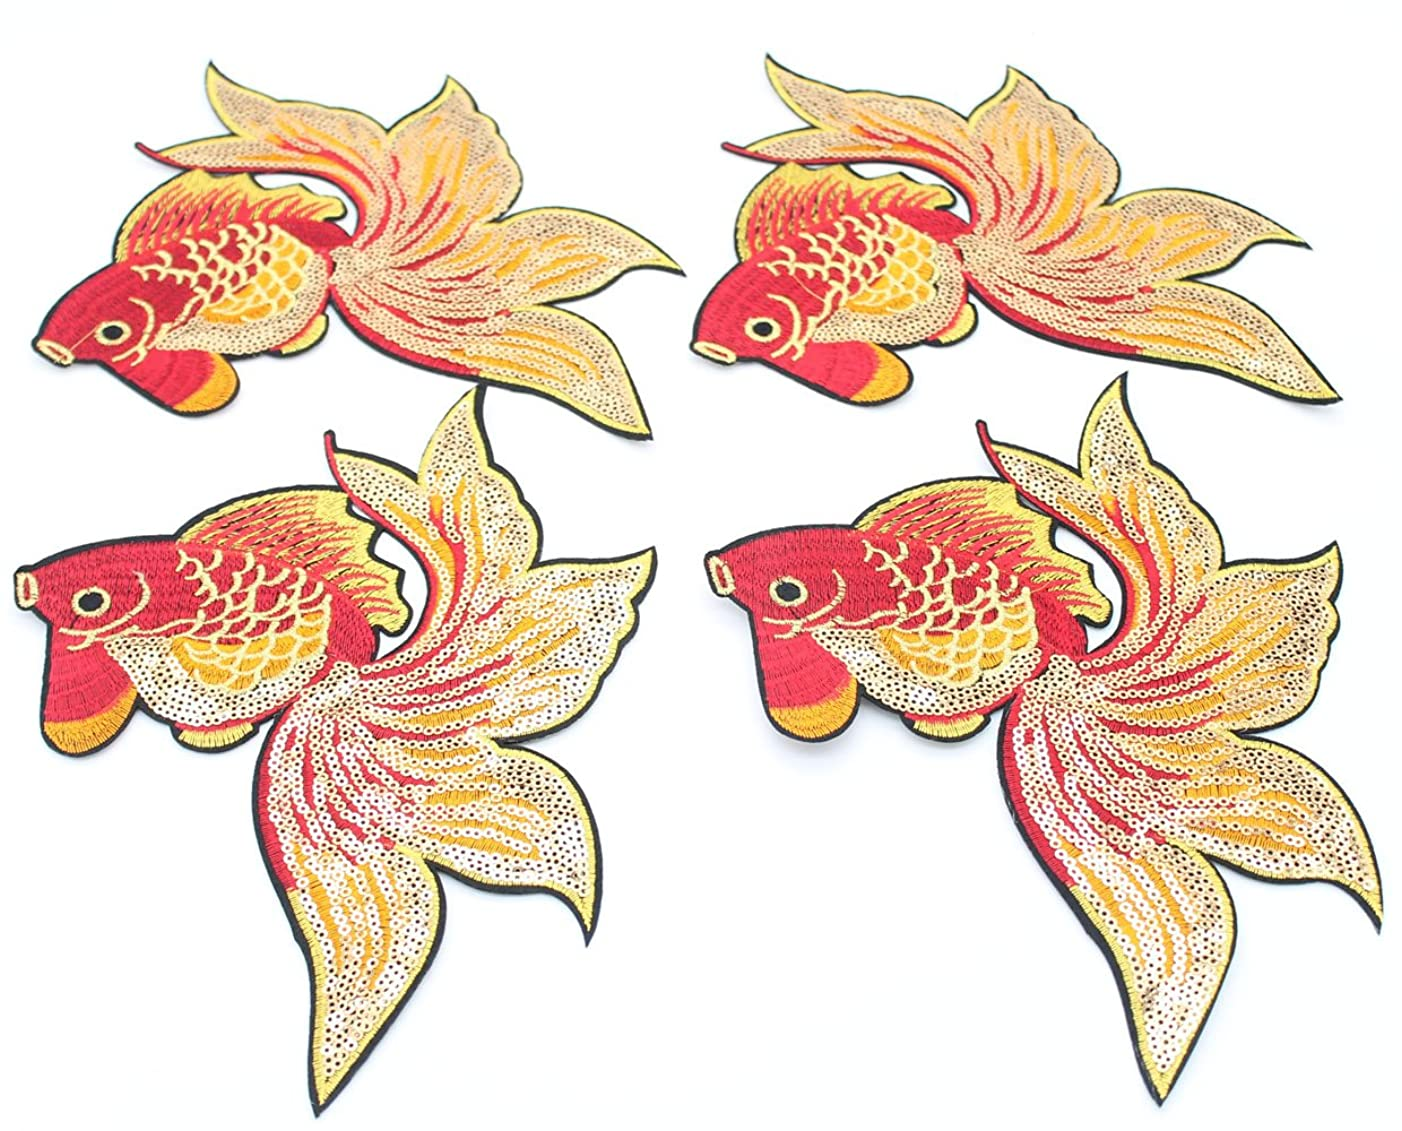 Applique Decoration DIY Design Shirt Jacket Embroidery 4 PCs Embroidered Iron-On Patch Applique by DIY Cloth Art Goldfish Pattern Decoration Ornaments Patches